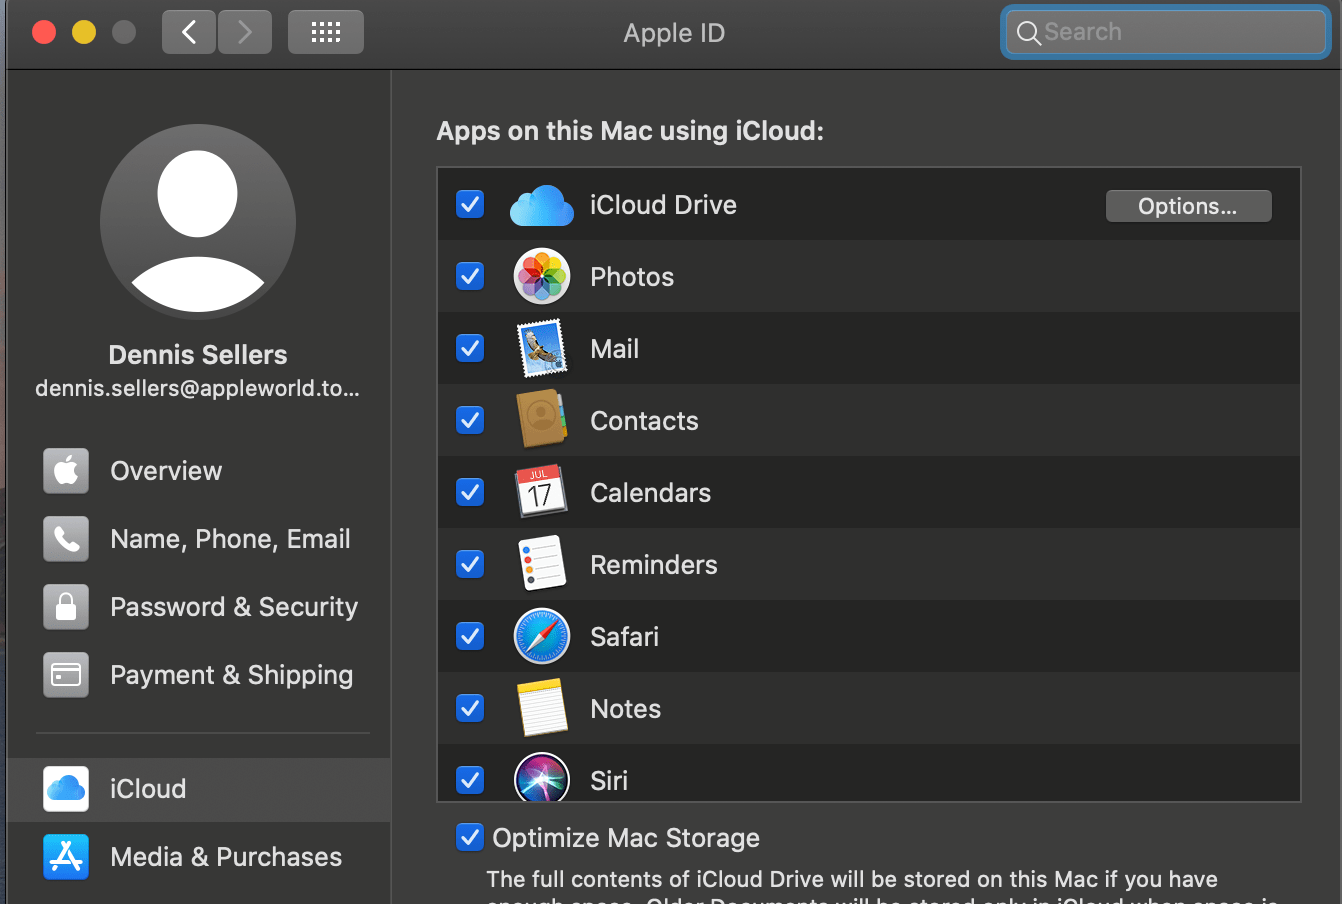 Choosing iCloud in your Apple ID preferences shows the apps being used